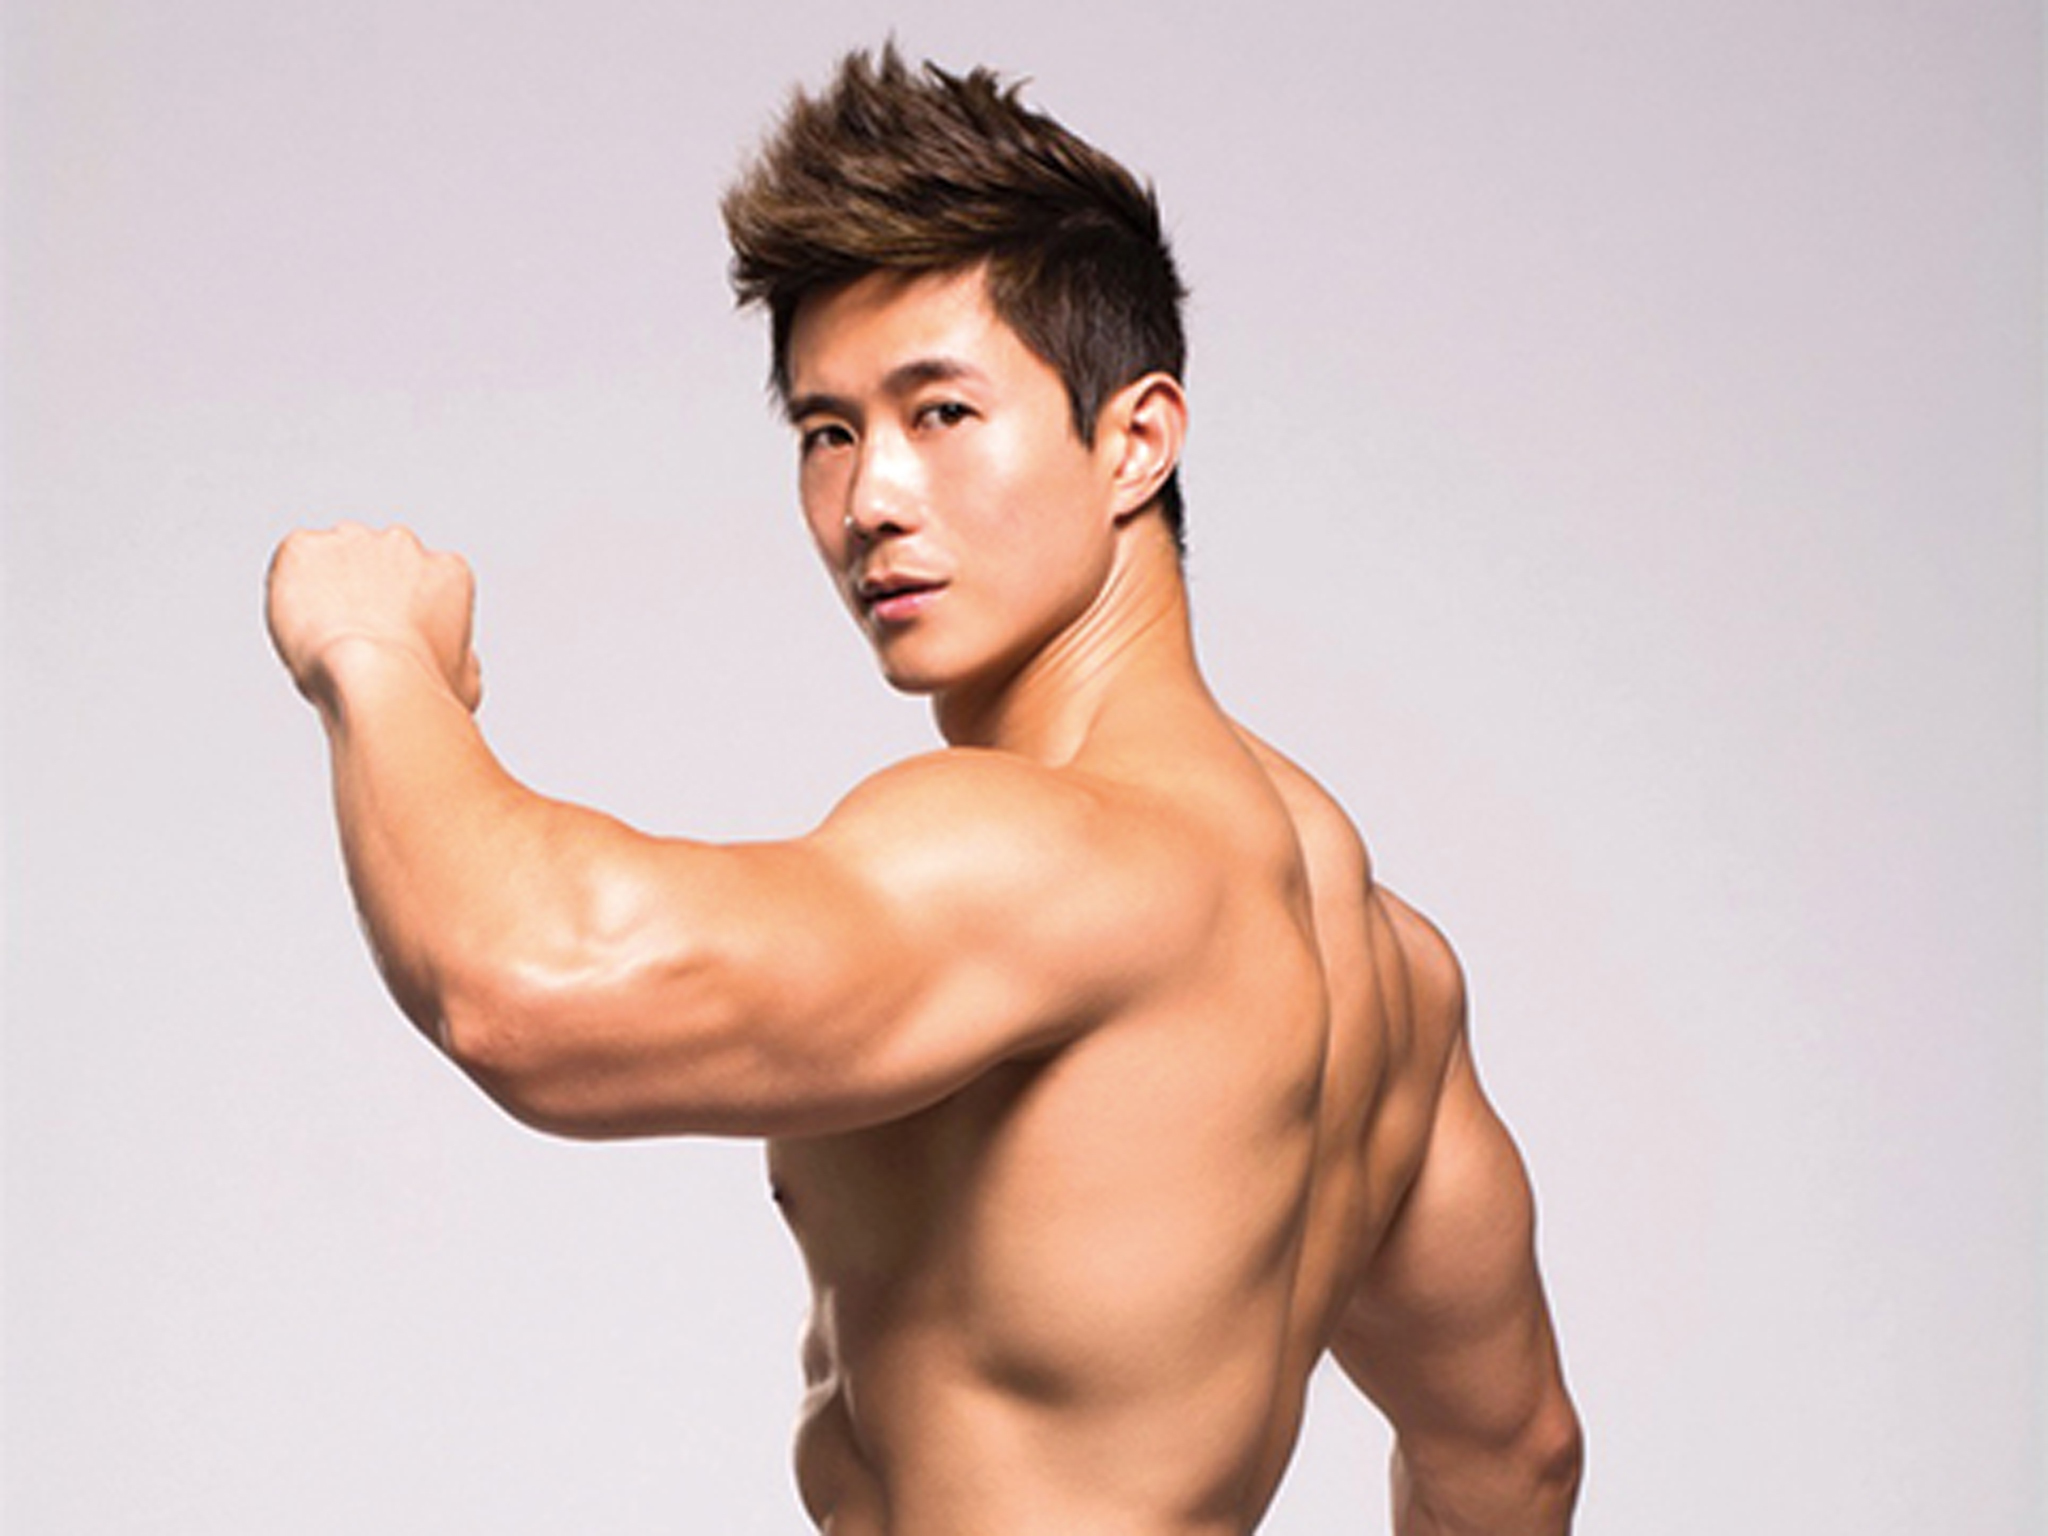 Peter Le on dick picks, Jeremy Long and the changing perception of Asian males